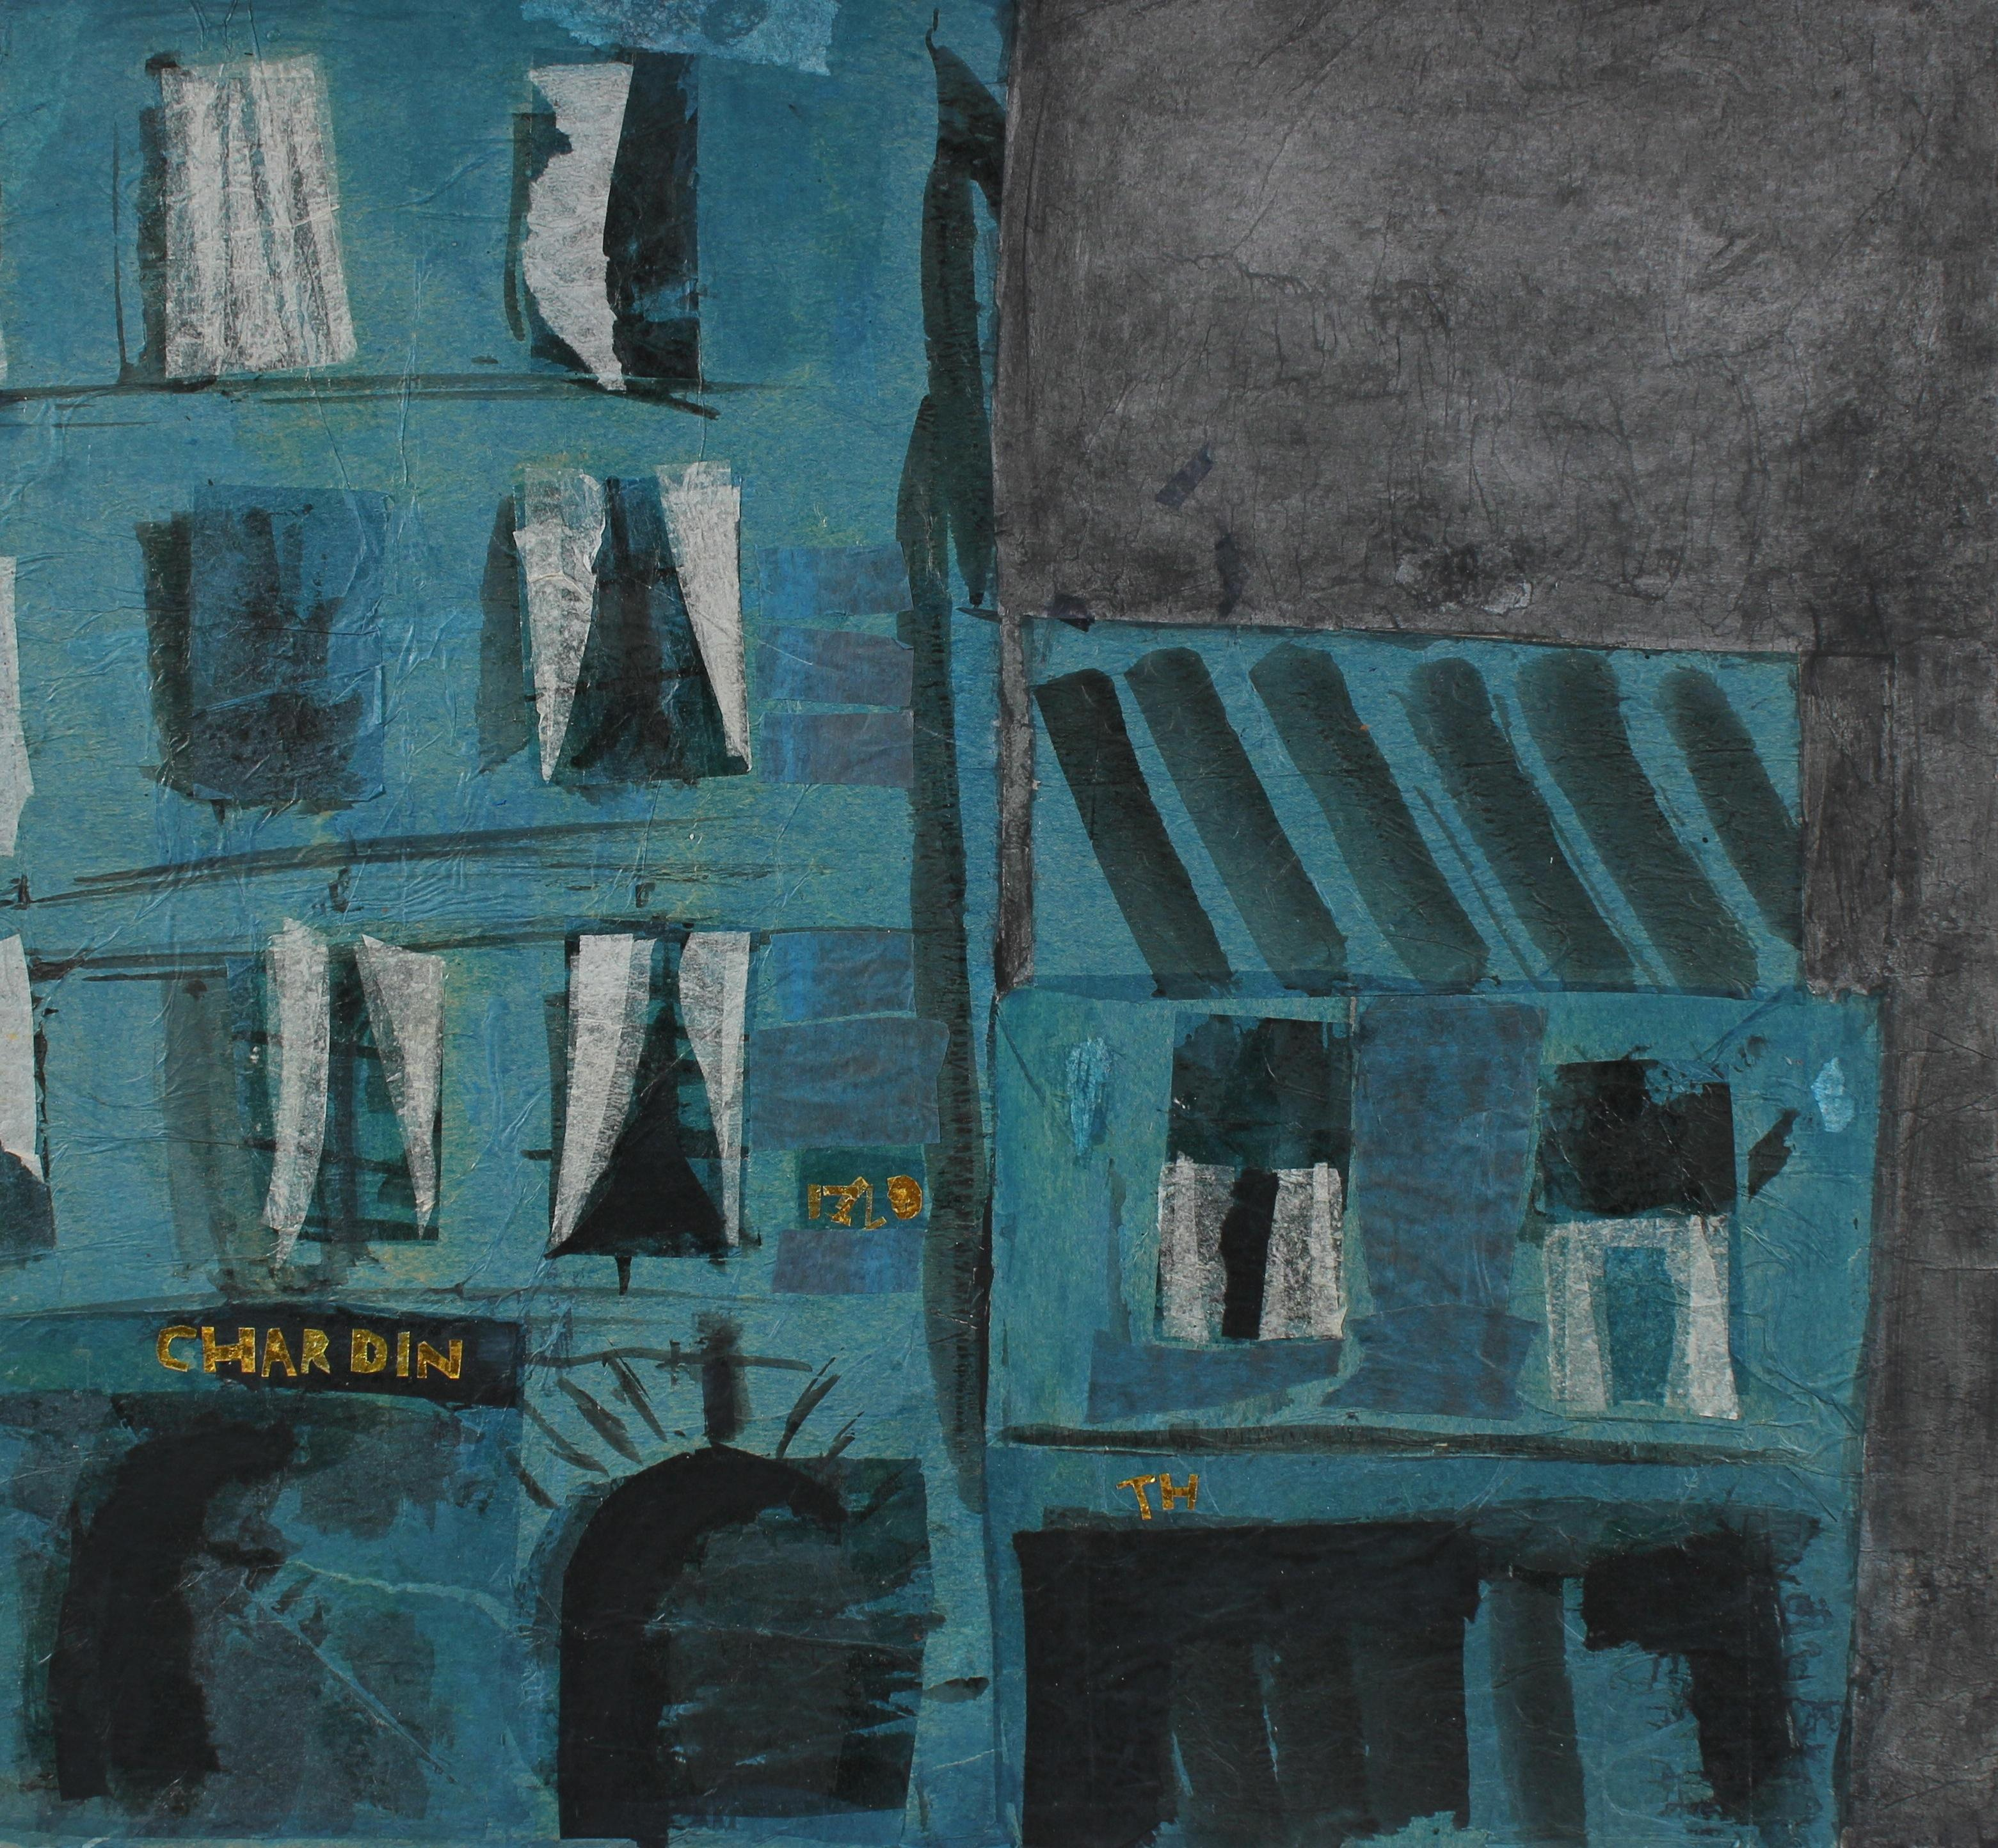 Modernist Building in Teal, Collage and Painting, Late 20th Century